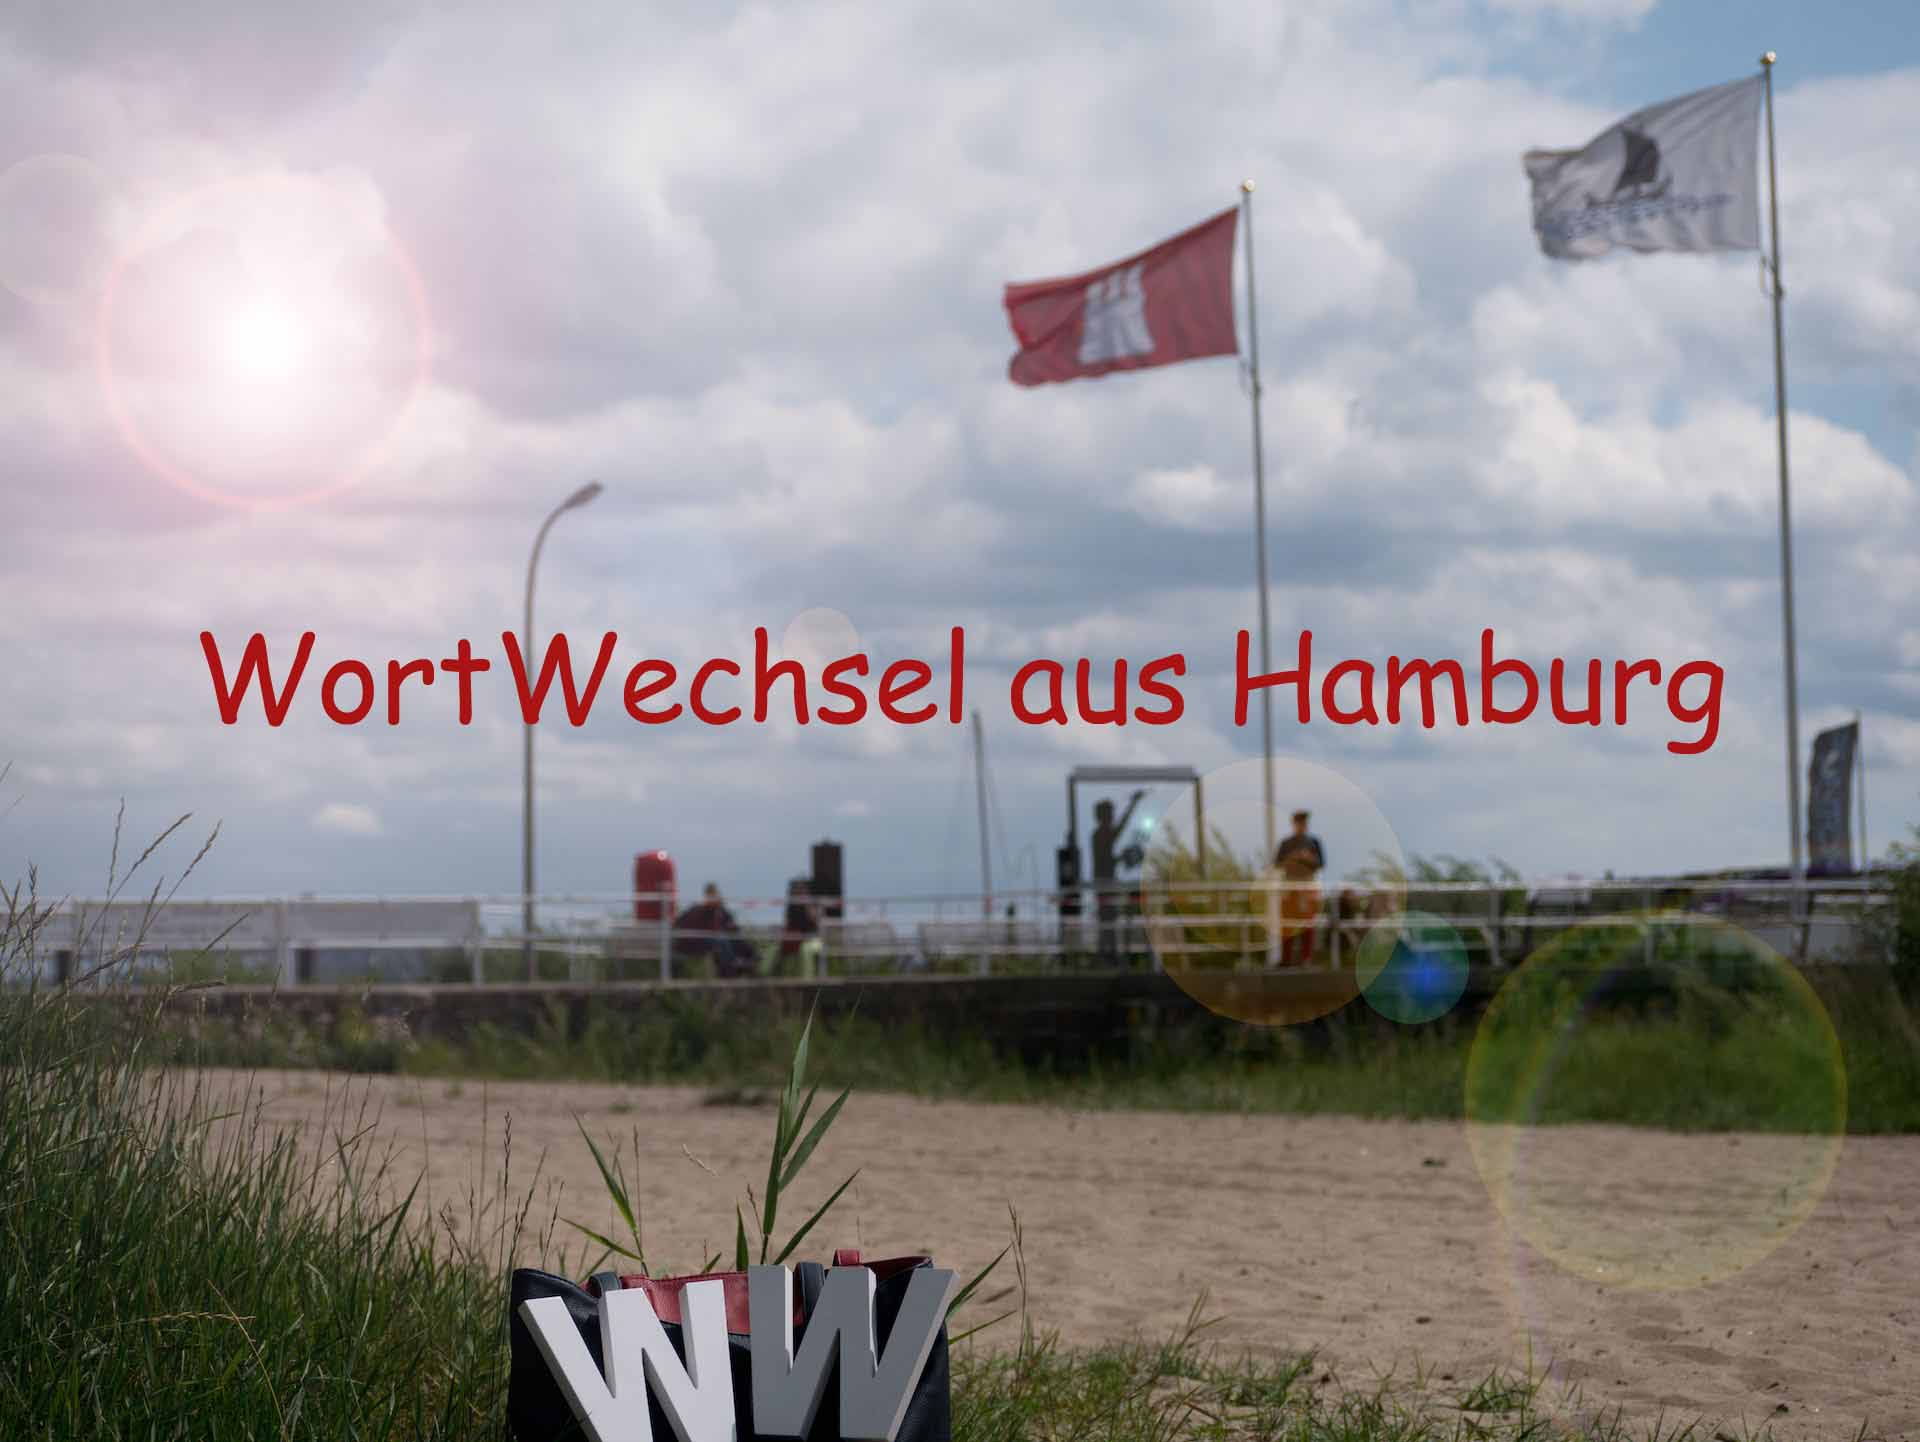 https://wortwechsel-hamburg.de